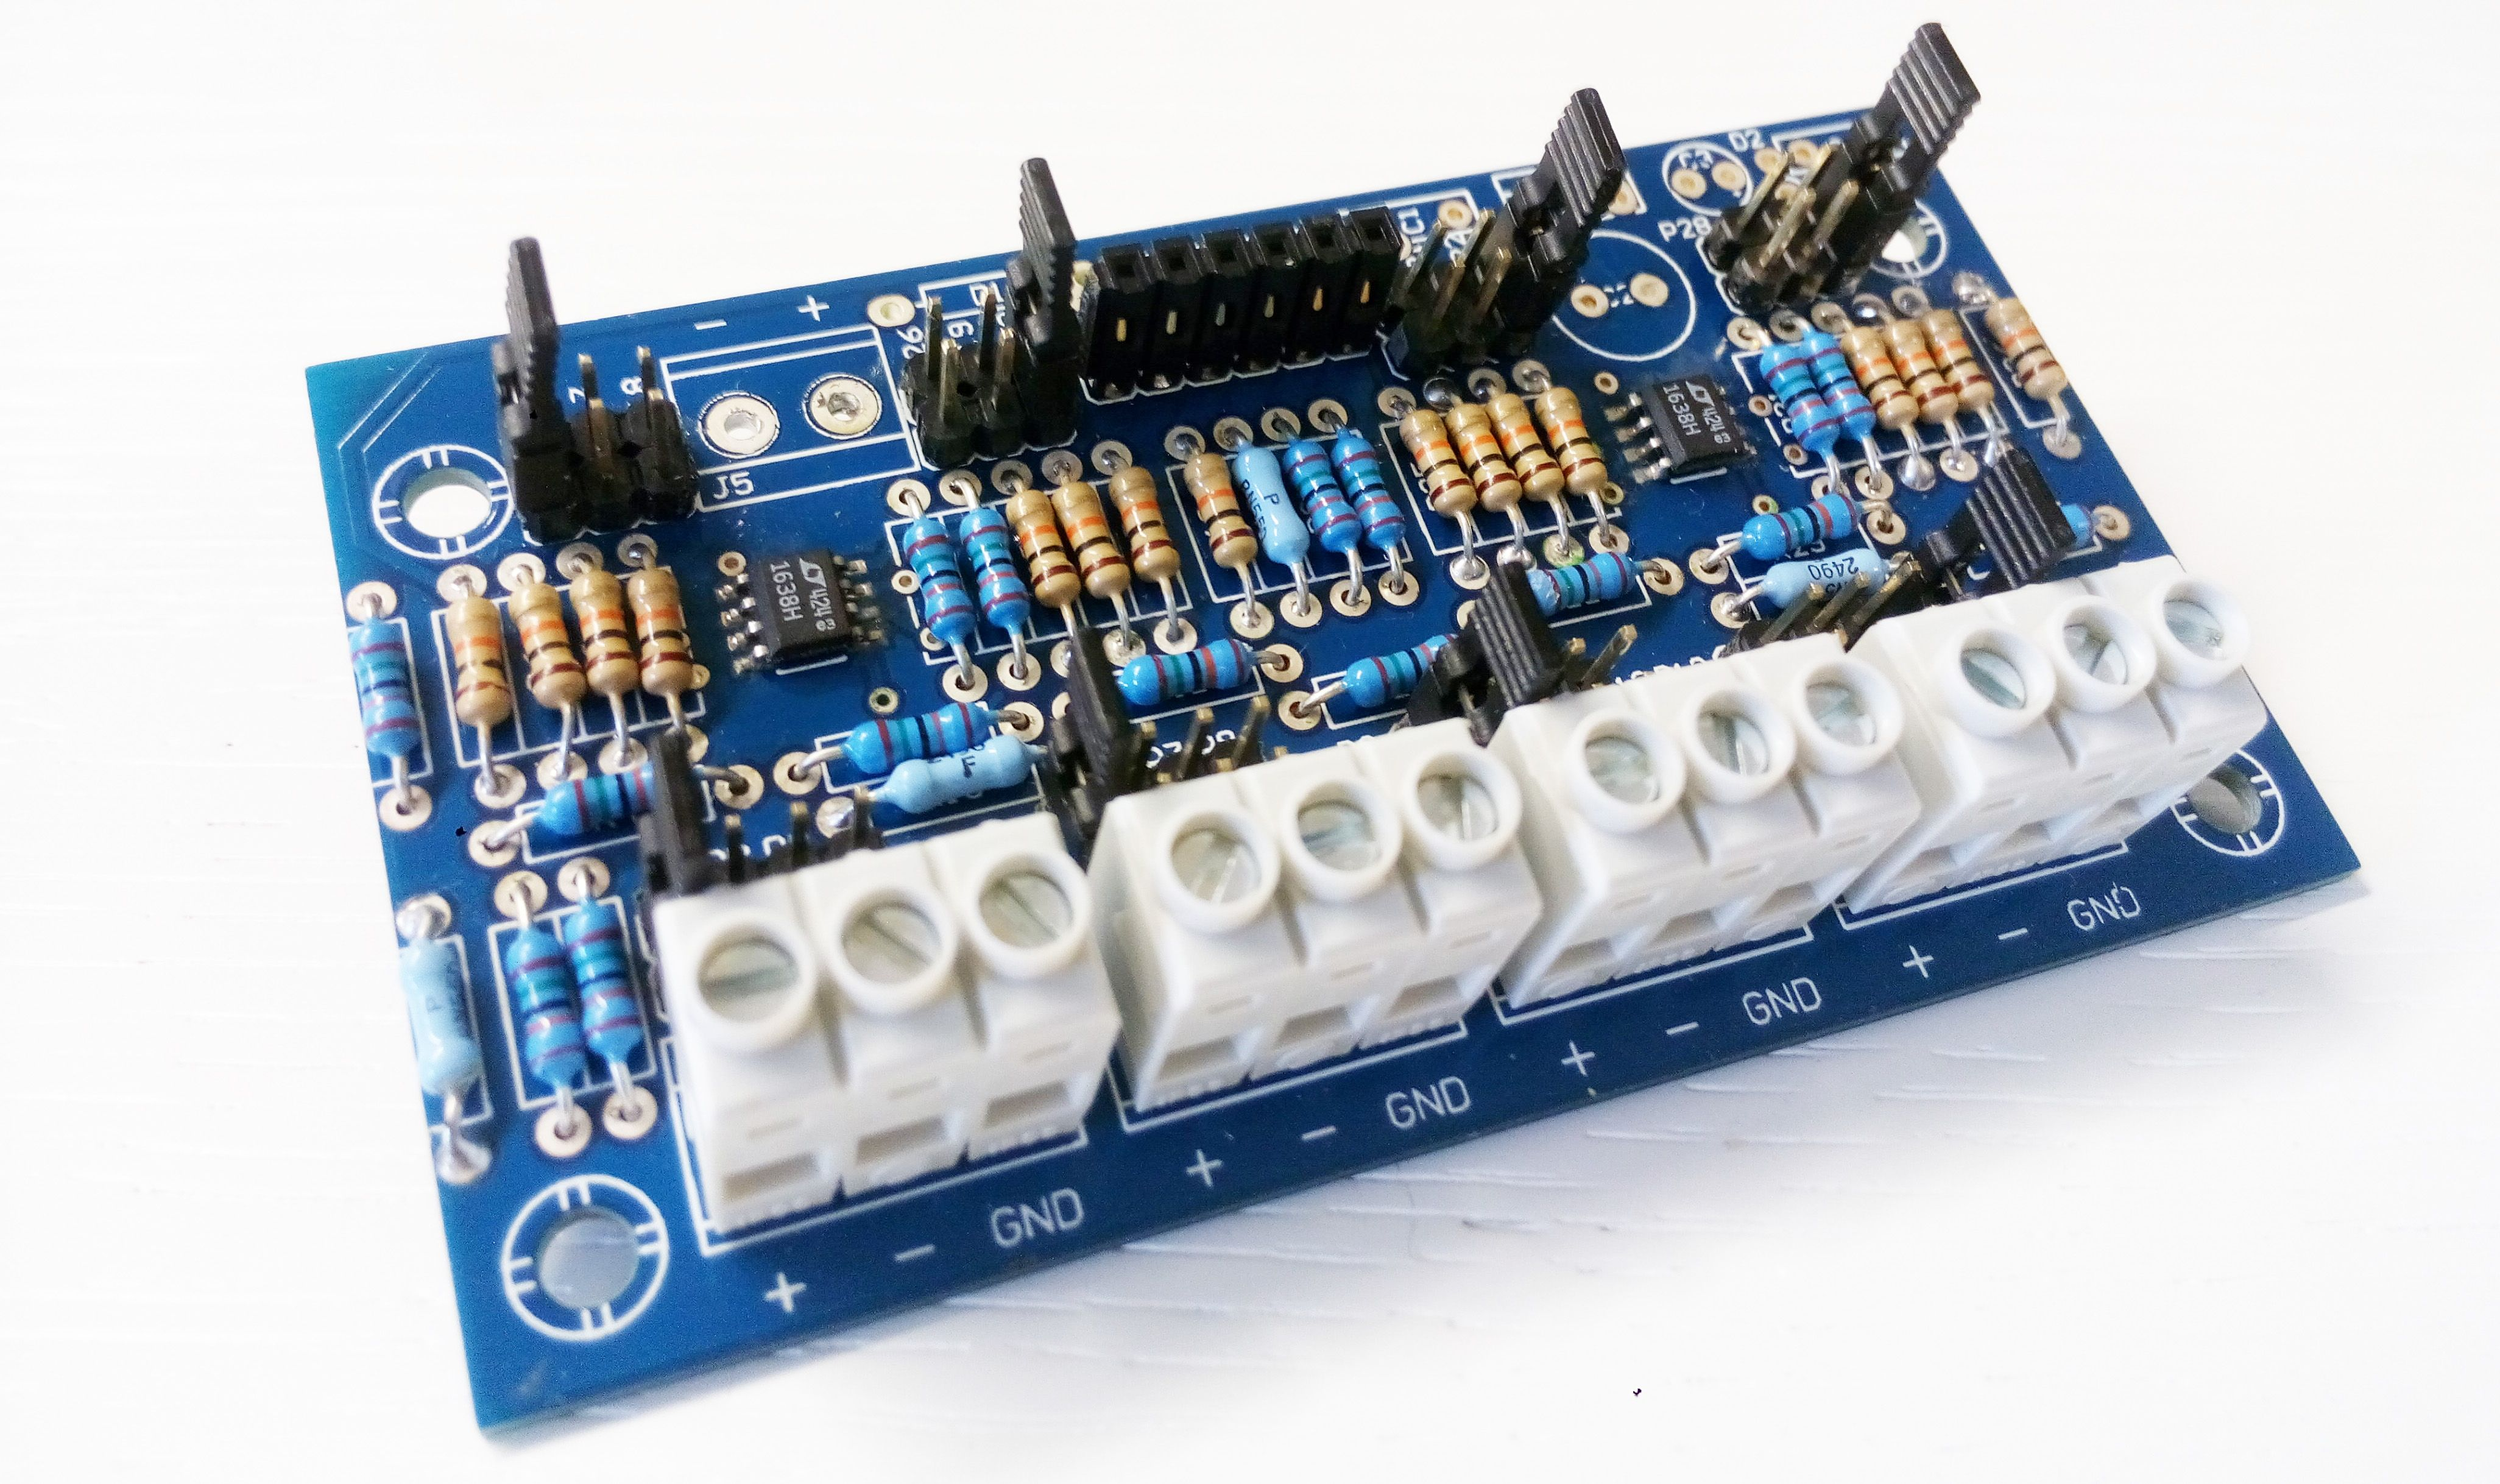 Bmana analog input converter for arduino boards but not